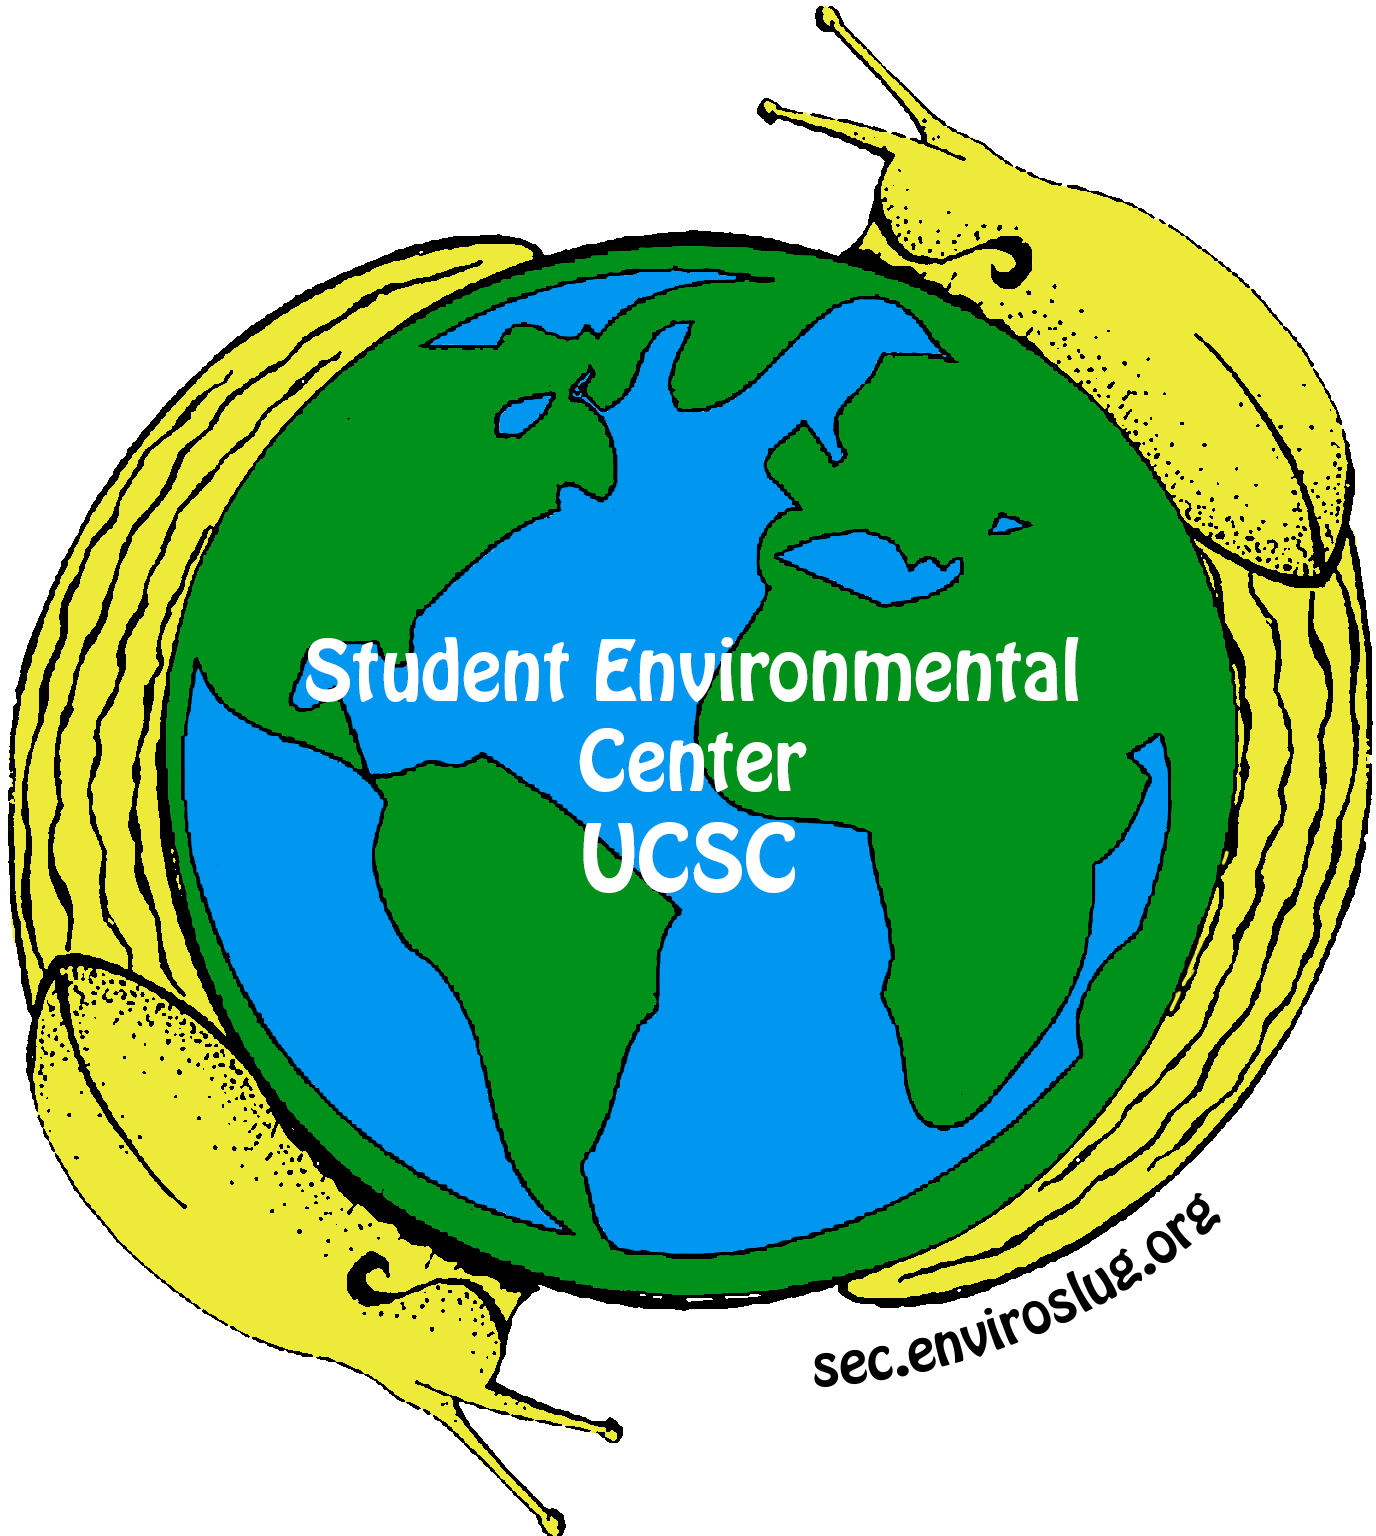 The Student Environmental Center